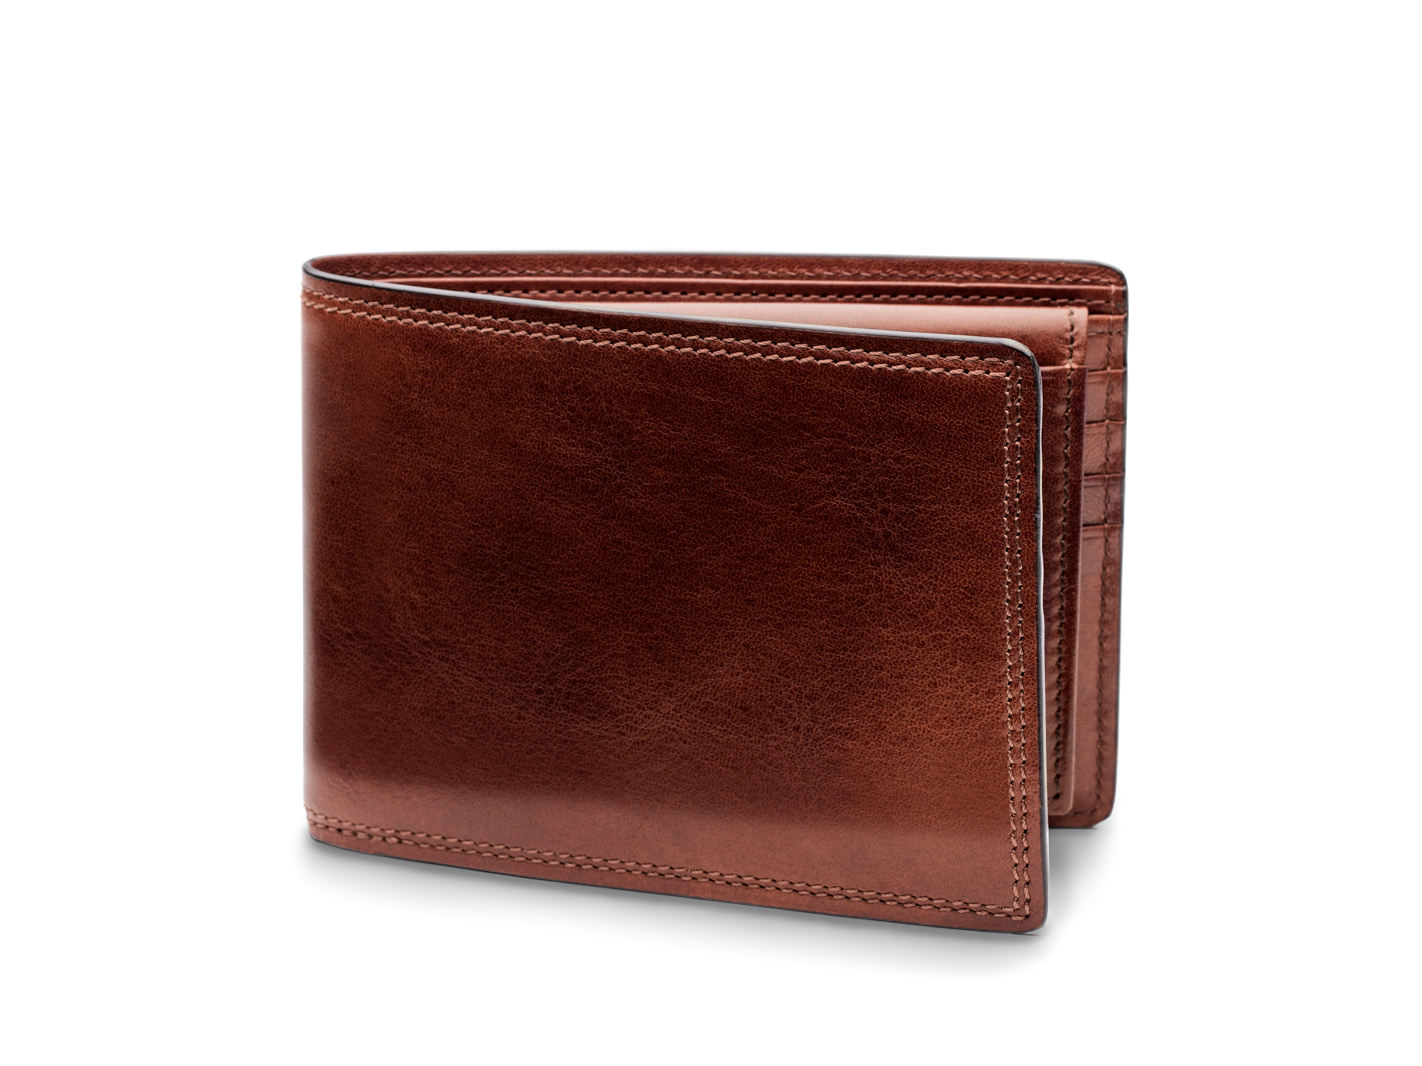 Credit Wallet w/I.D. Passcase-218 Dark Brown - 218 Dark Brown